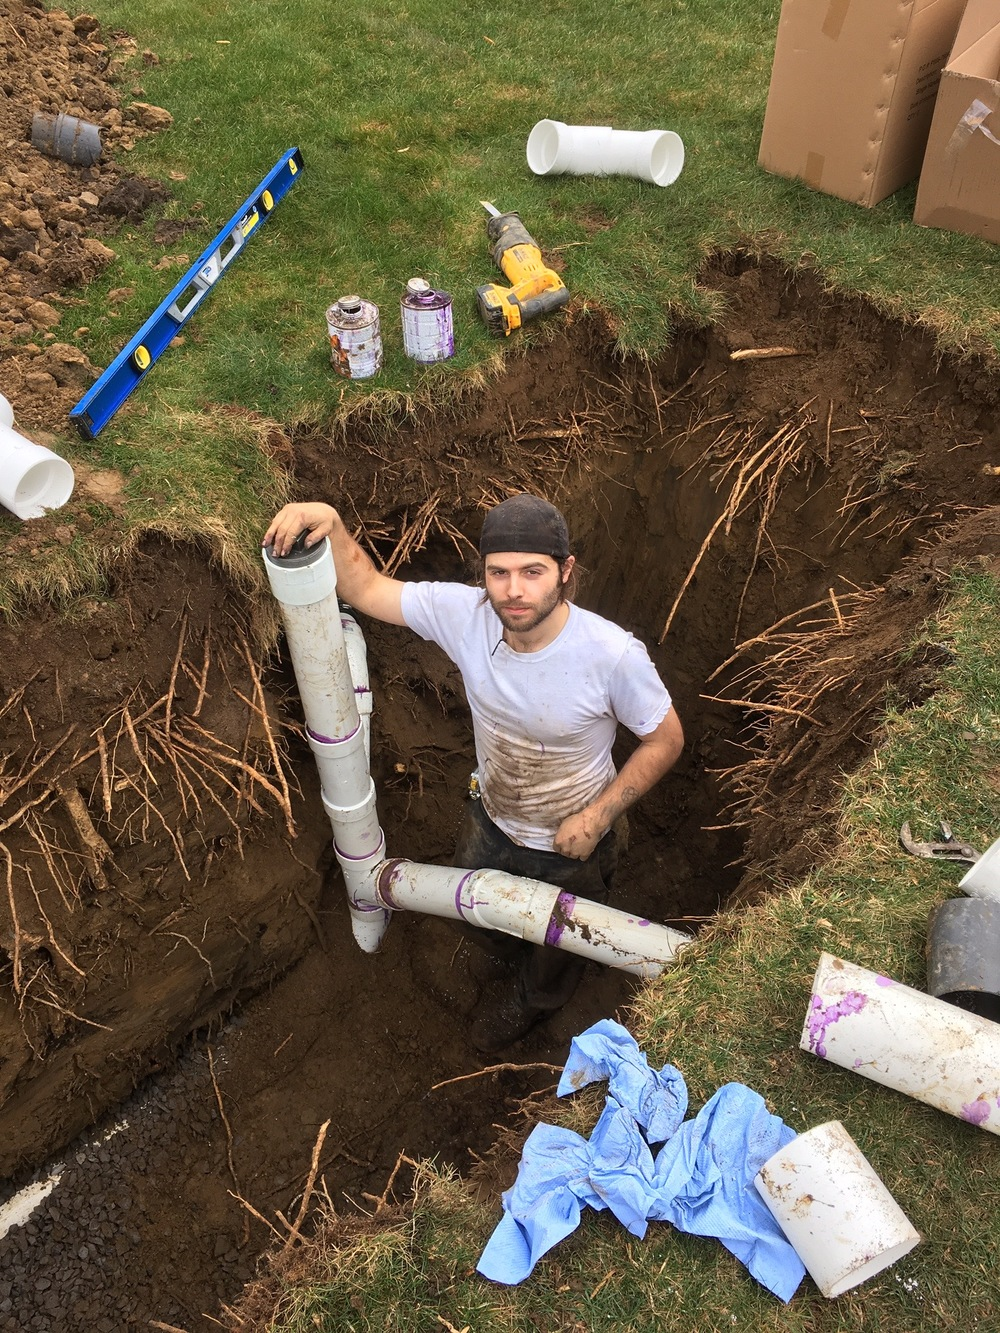 Carson installing a lot-line clean out.  This will allow easy access to the sewer in the future should a need arise.